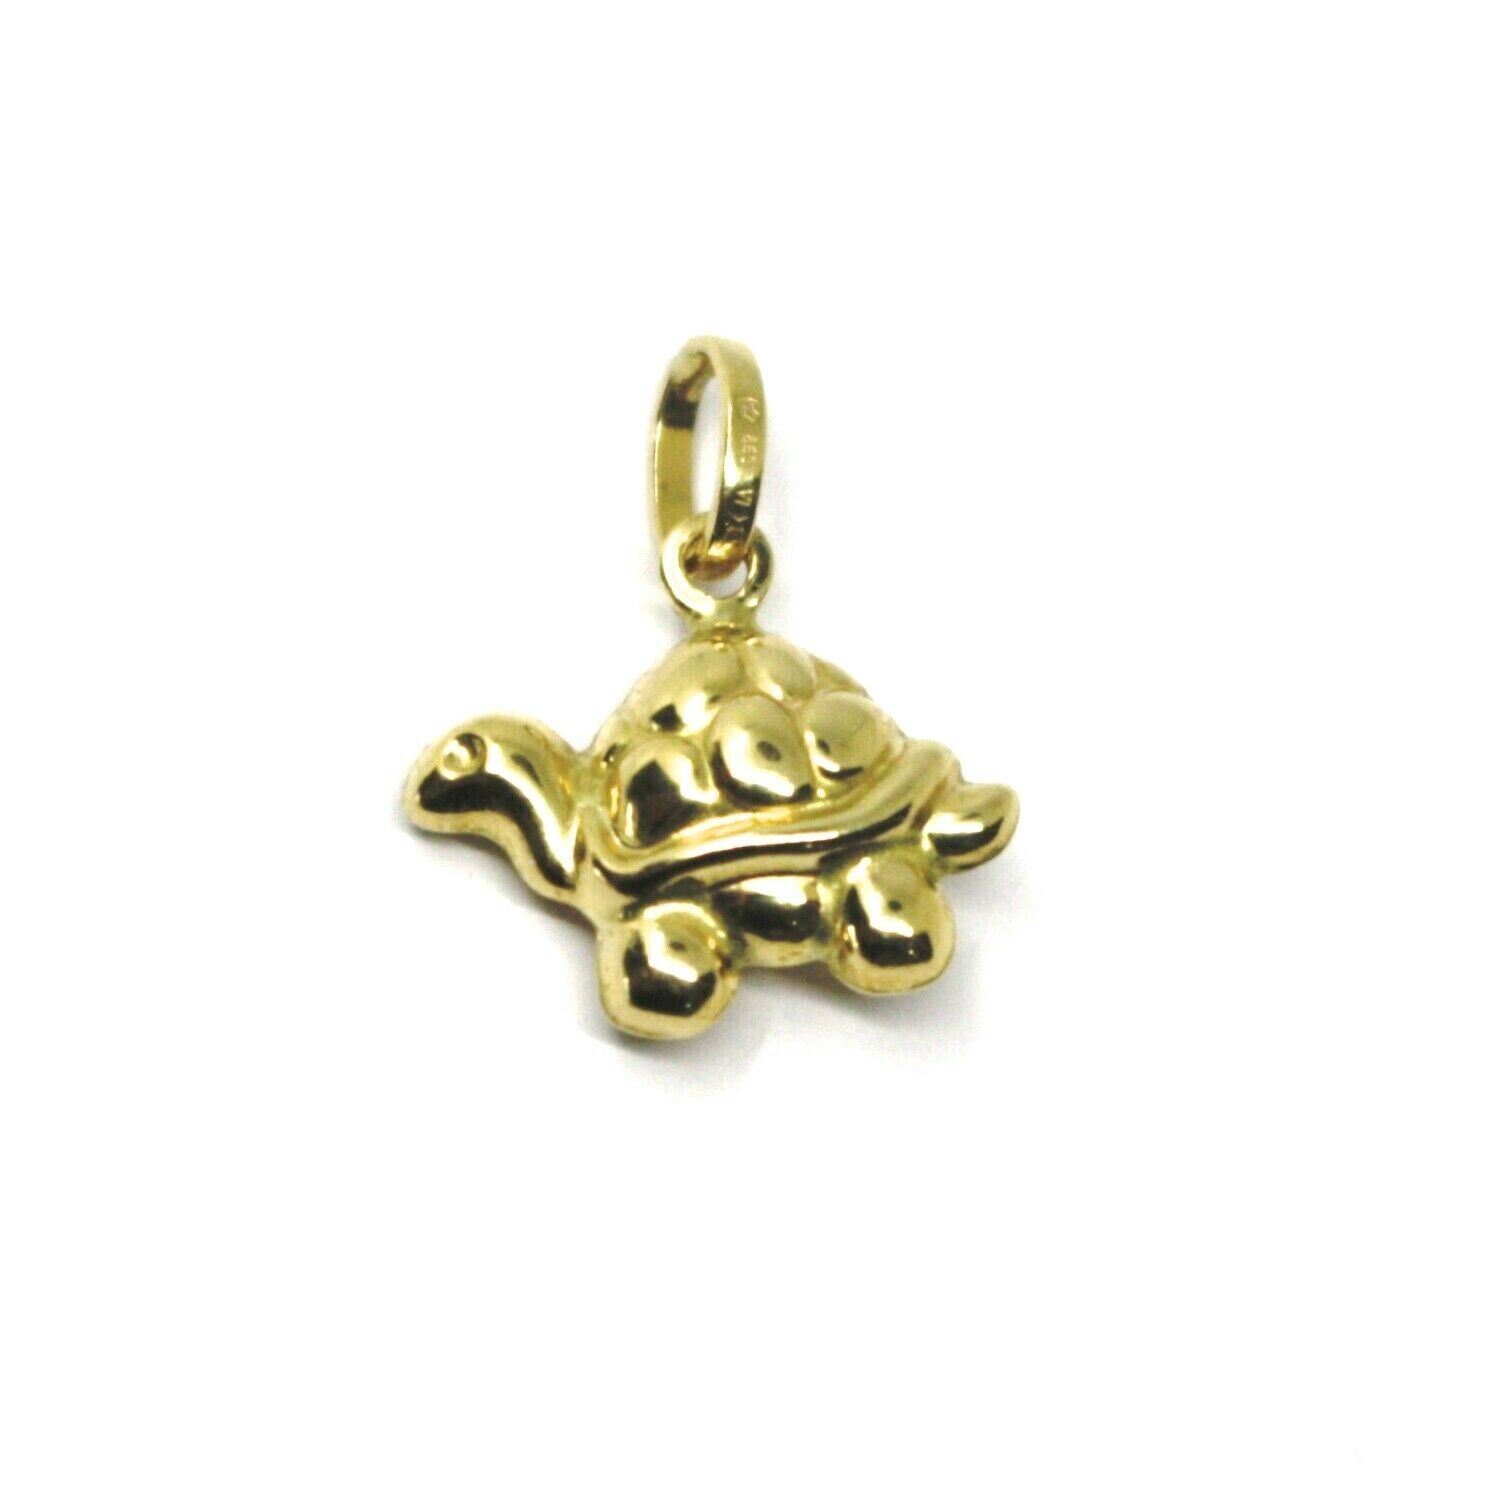 18K YELLOW GOLD MINI ROUNDED TURTLE PENDANT 14mm DIAM. TWO FACES SMOOTH & WORKED